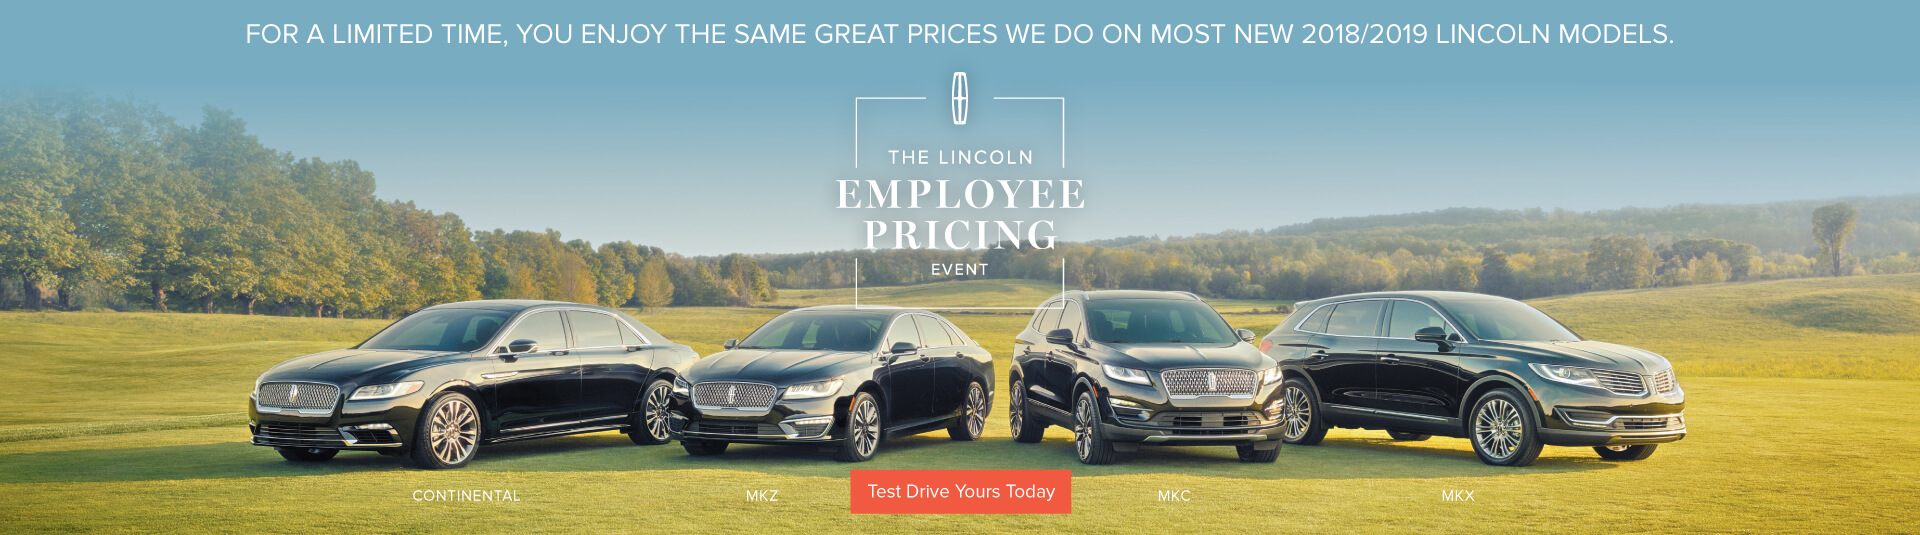 Lincoln Employee Pricing Event